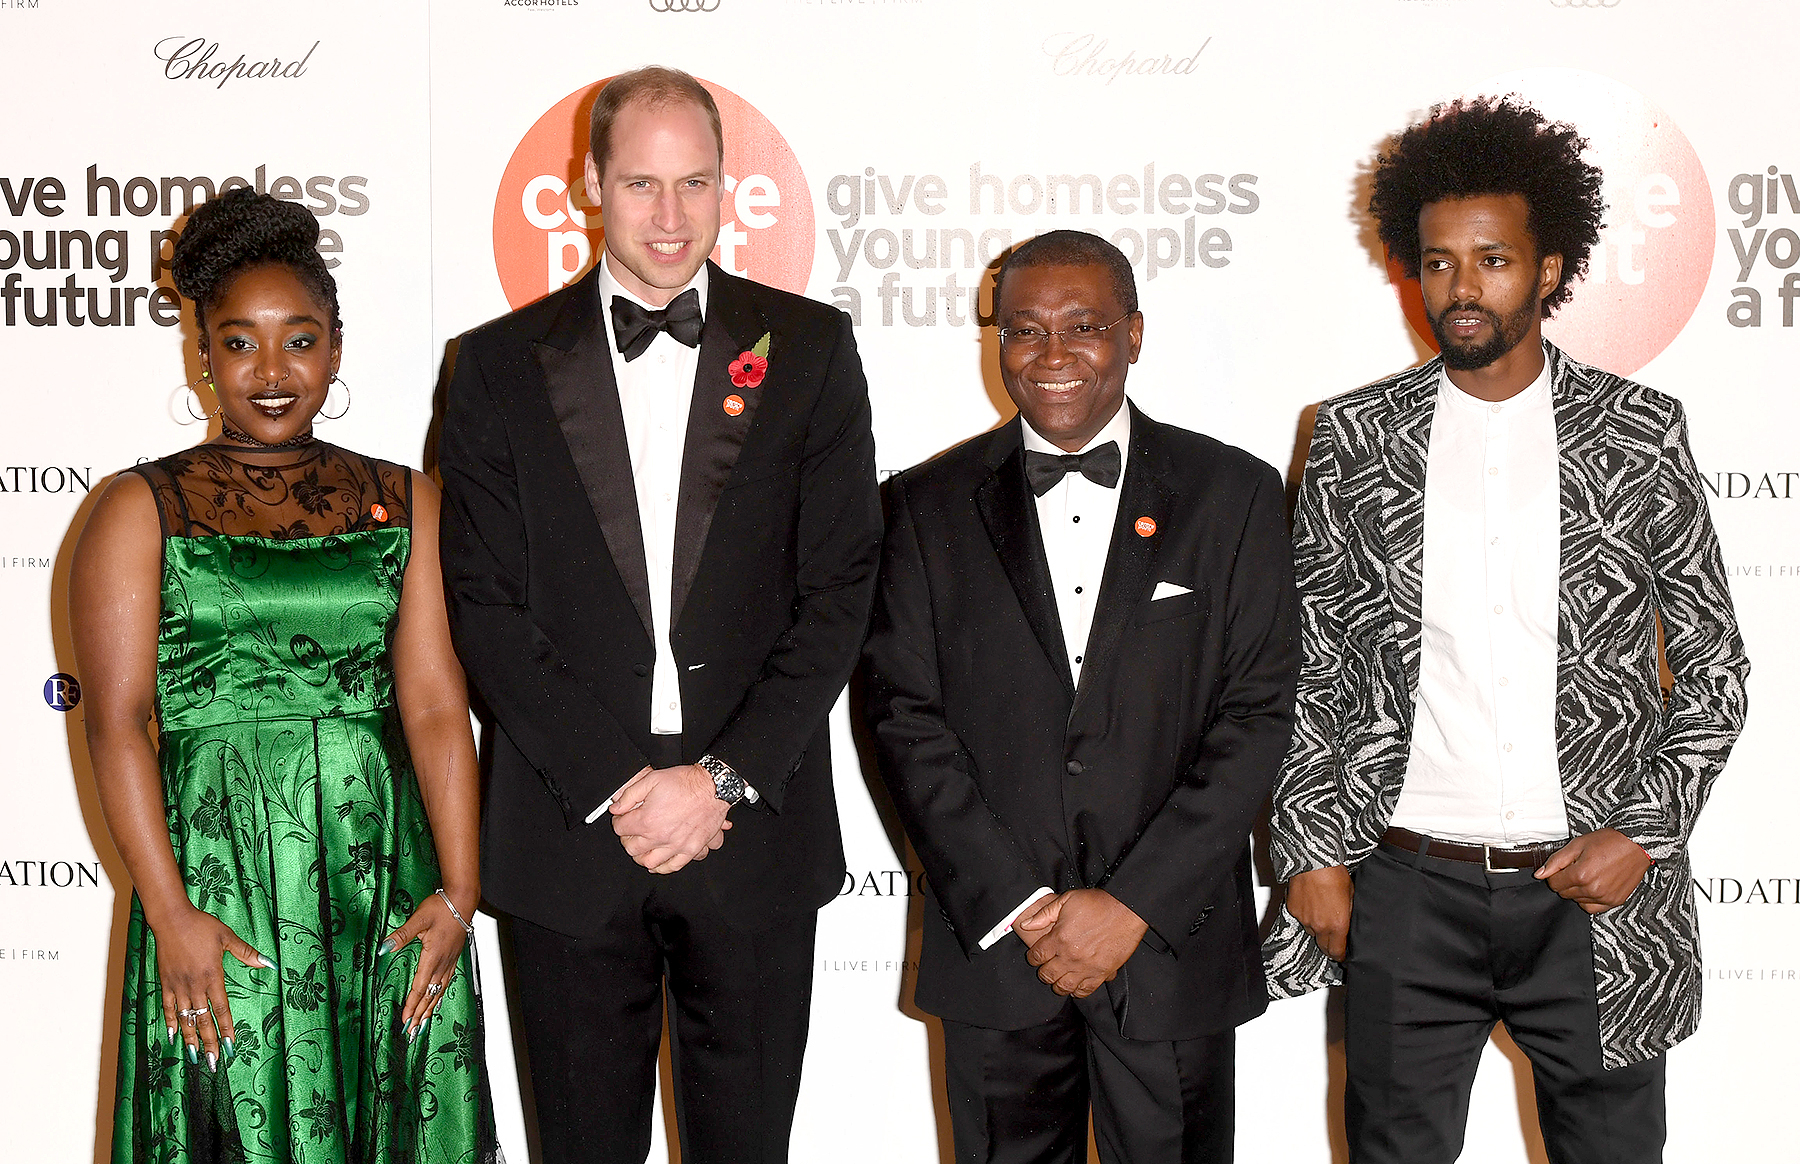 Prince William, The Duke Of Cambridge with Centrepoint CEO Seyi Obakin (2nd R) attends Centrepoint At The Palace at Kensington Palace on November 10, 2016 in London, England.